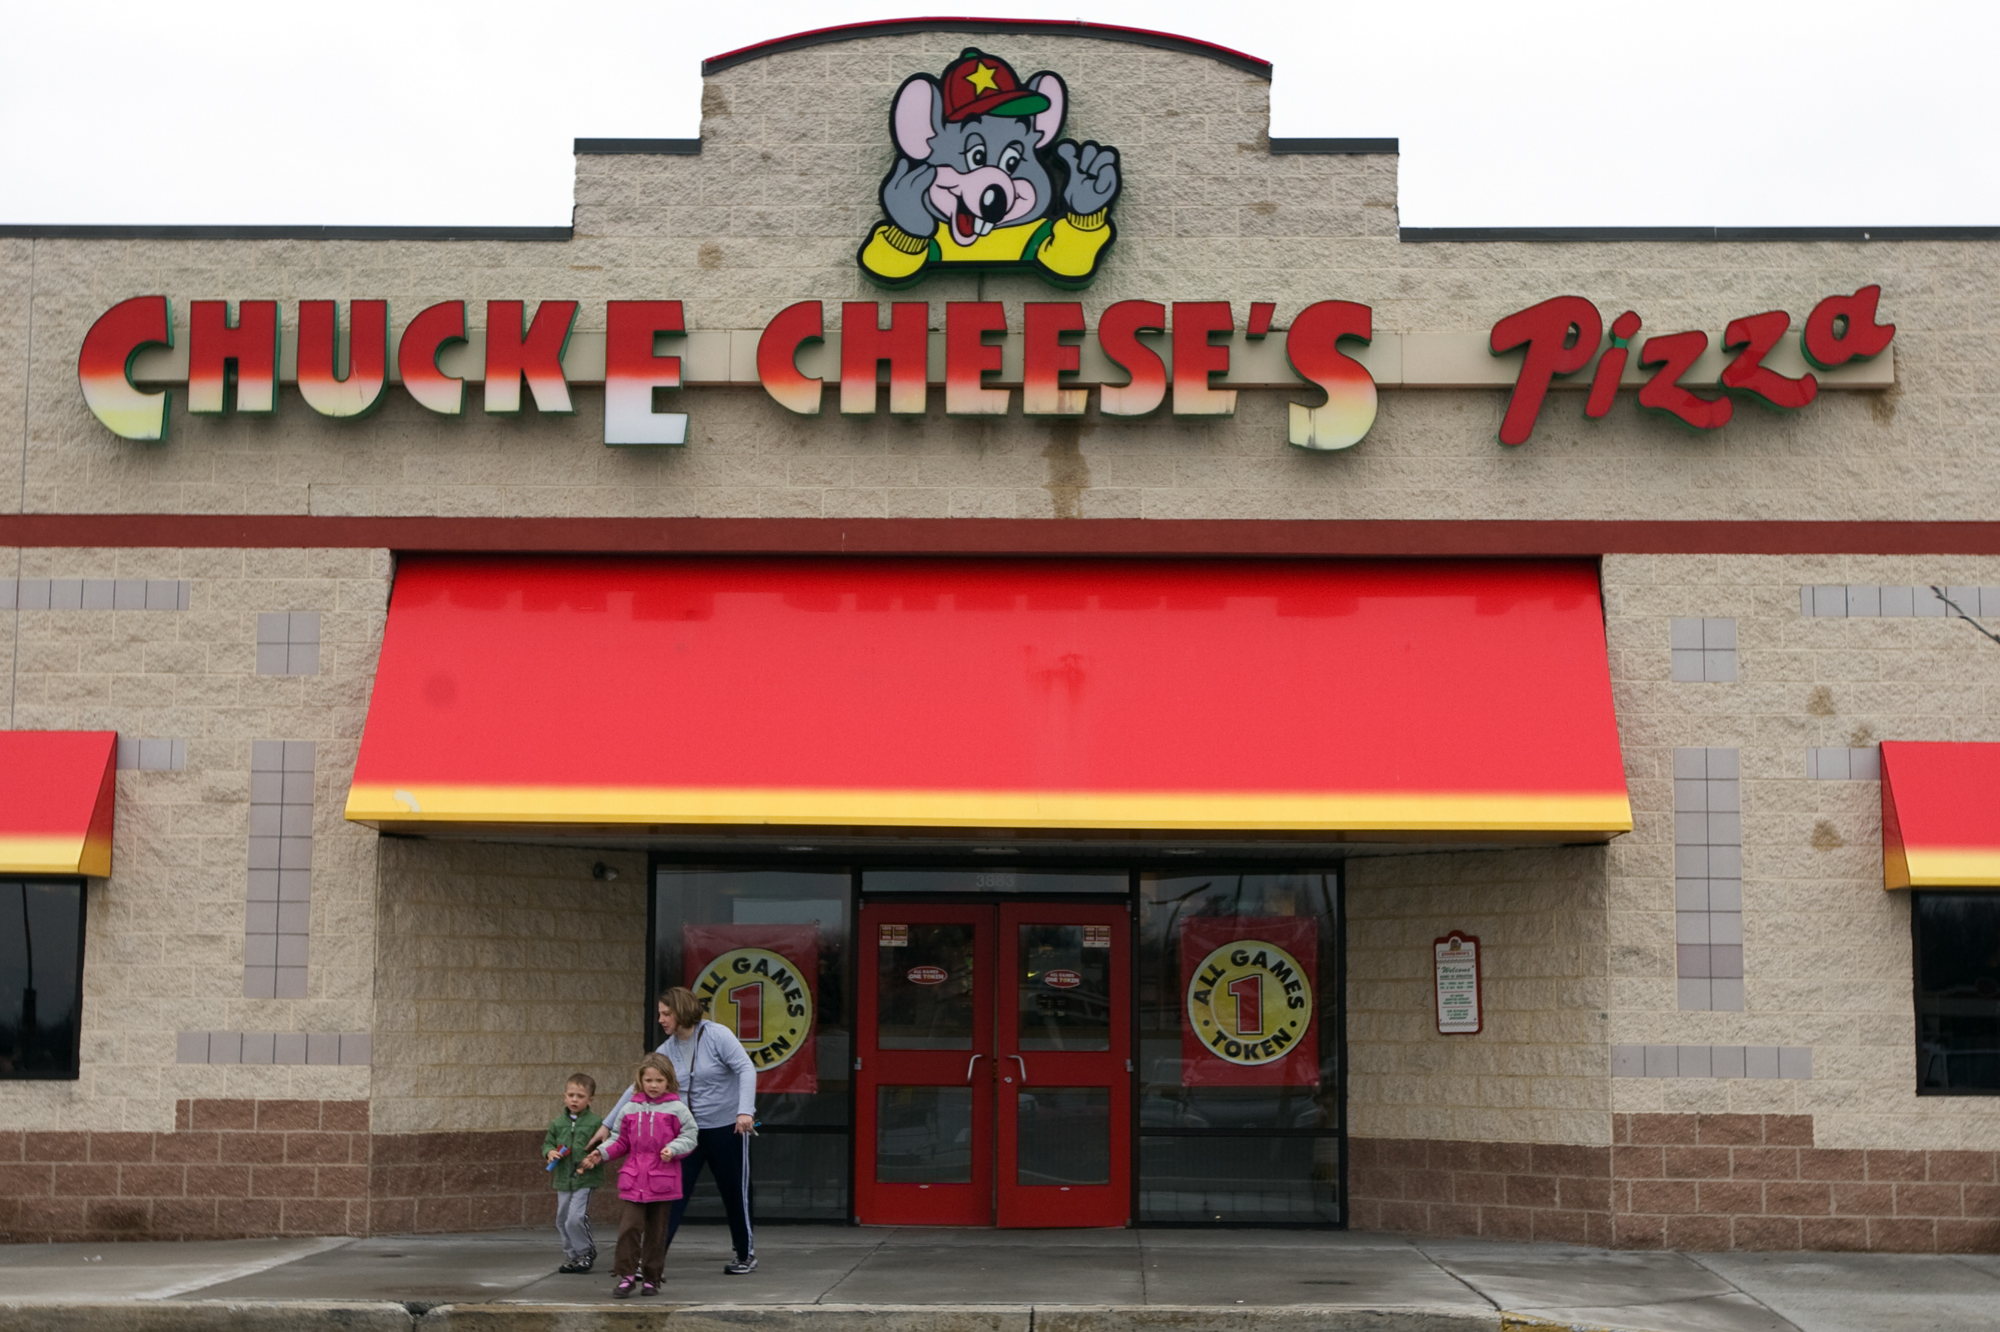 Chuck E. Cheese's Restaurant